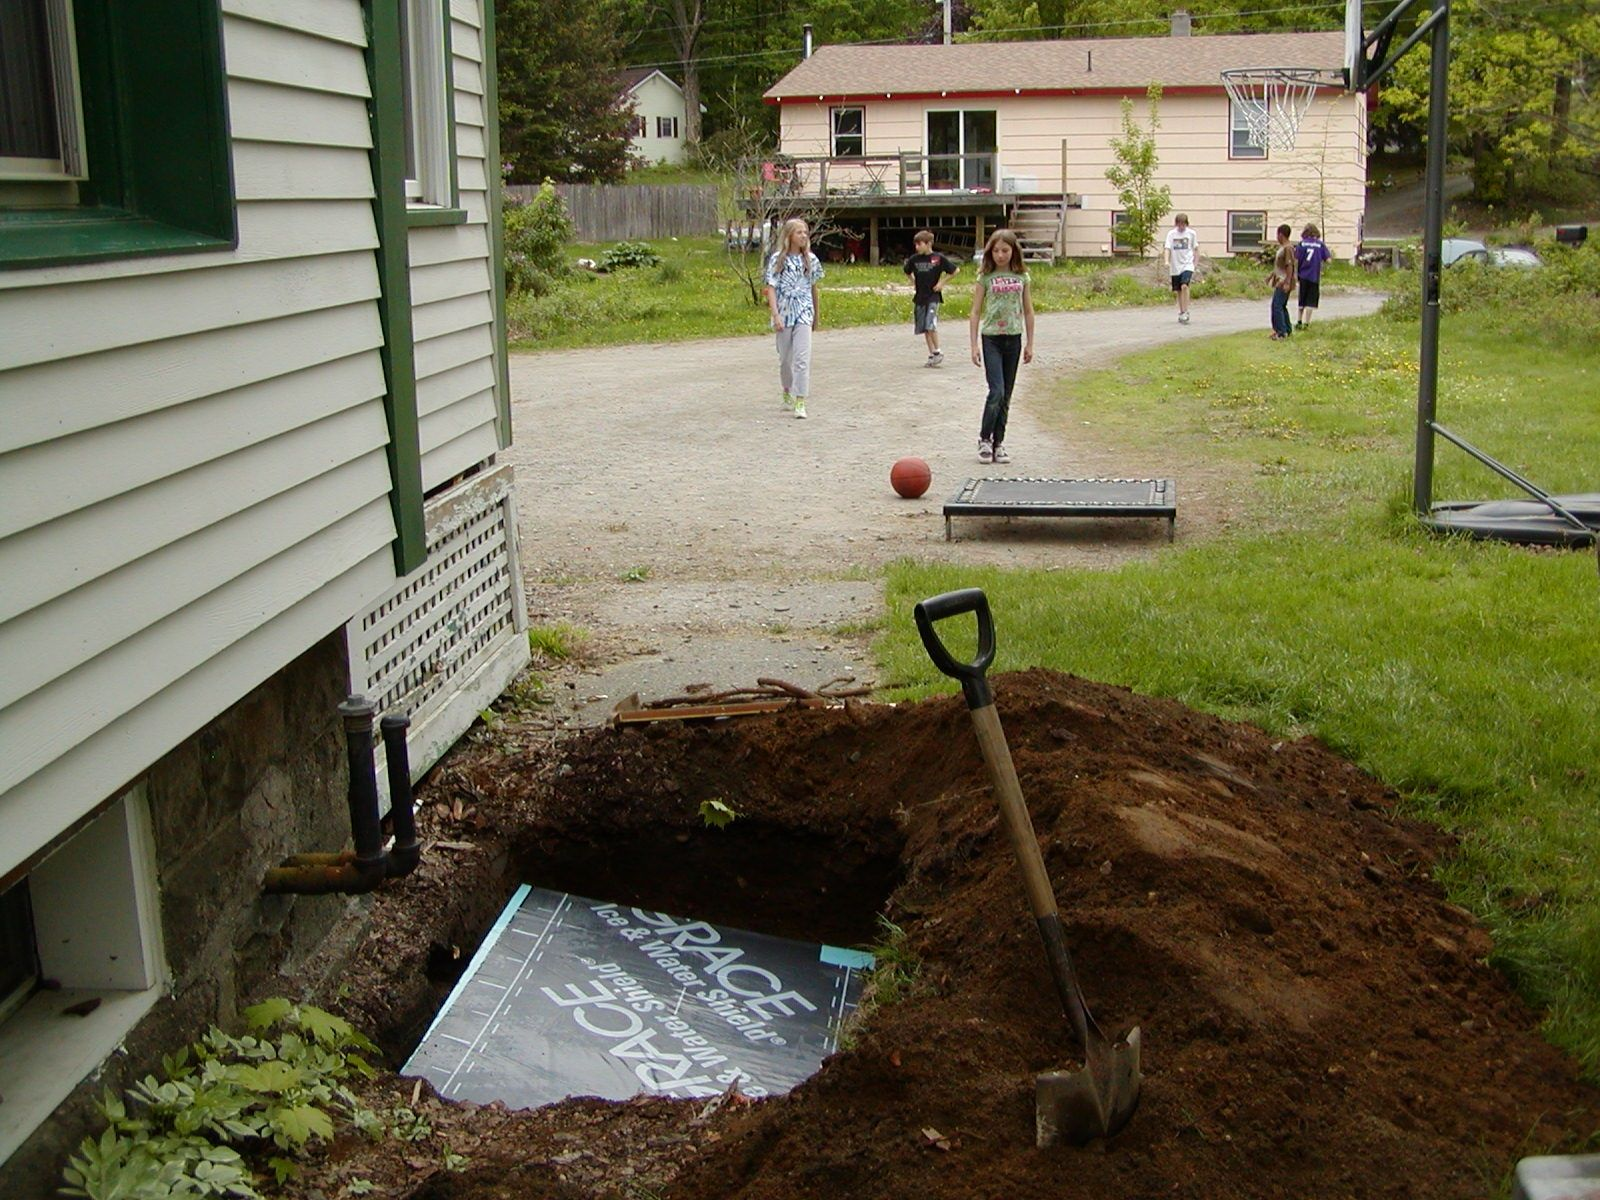 Underground roof divert water away from foundation